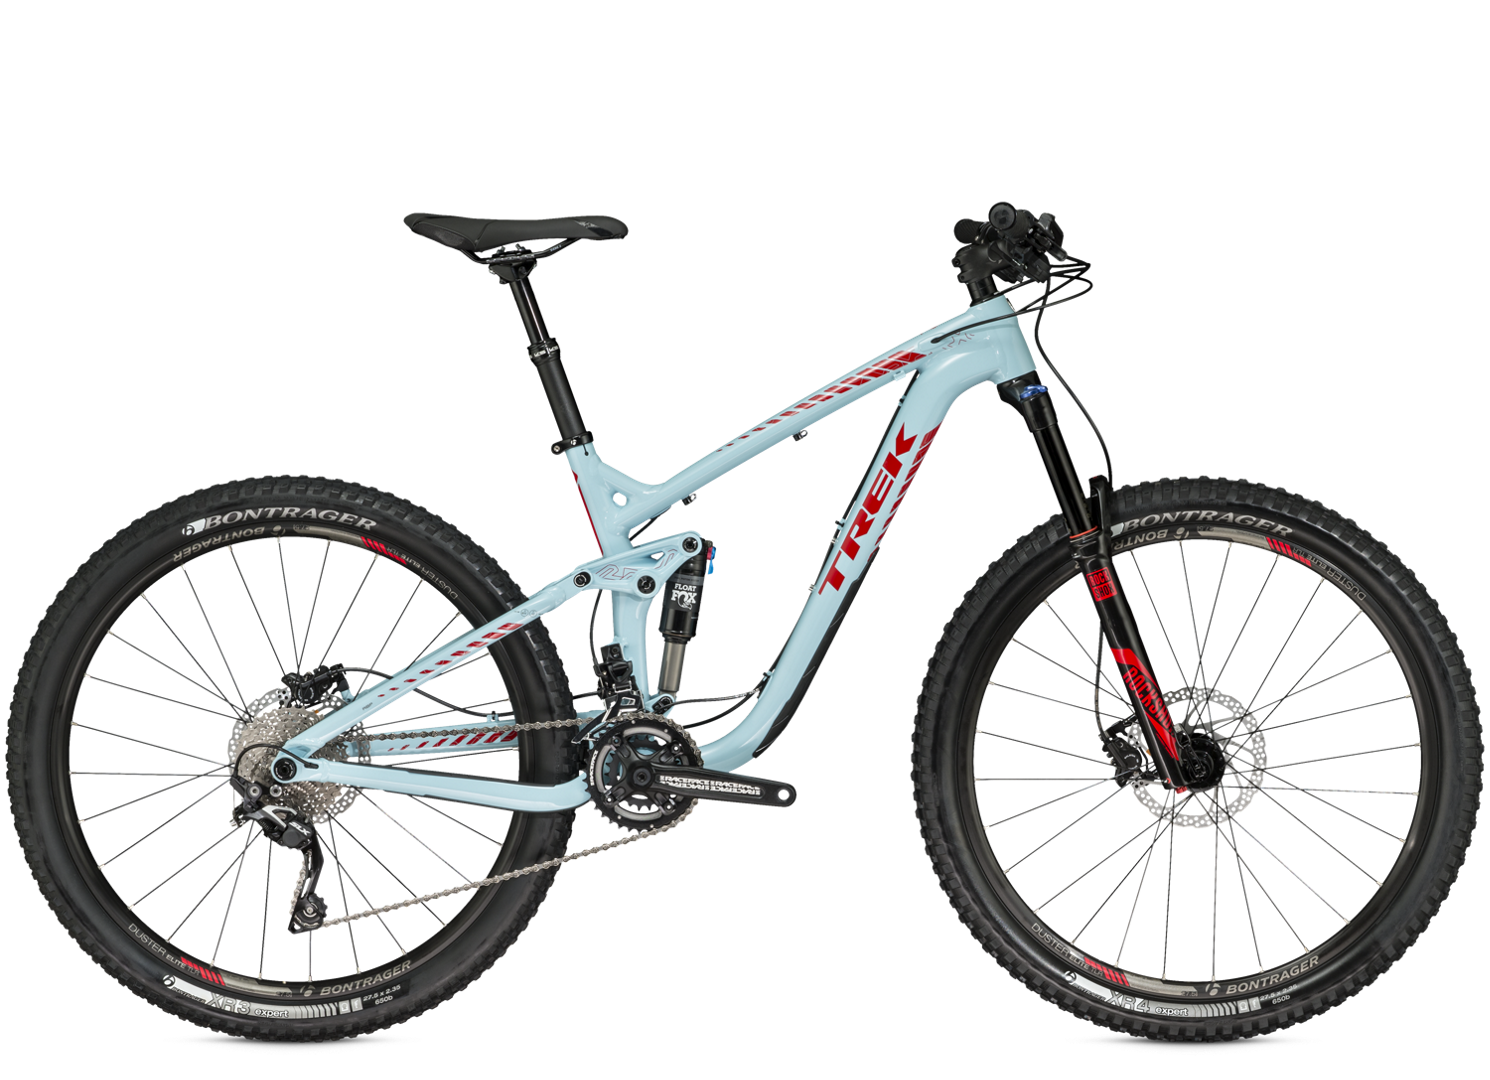 ee9a15bfb23 2016 Remedy 7 27.5 - Bike Archive - Trek Bicycle